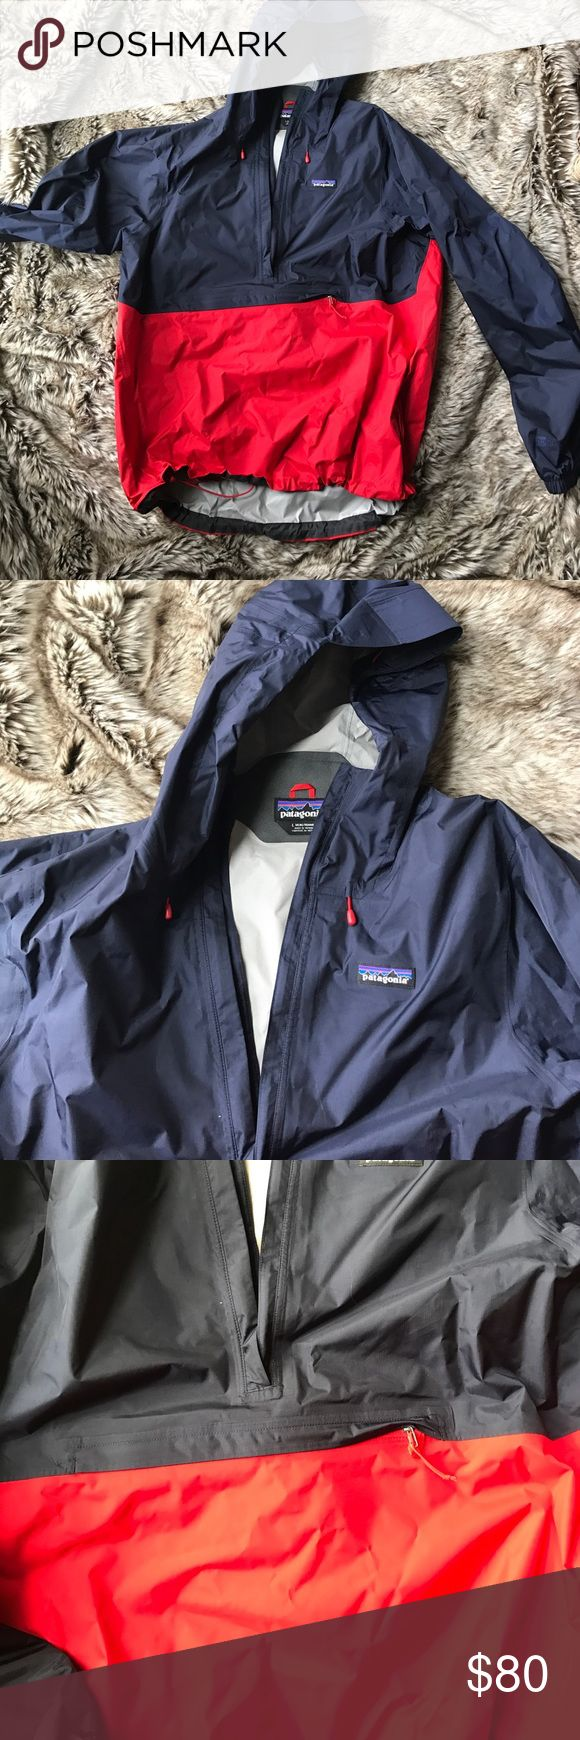 Patagonia Men's Torrentshell Pullover Windbreaker Great jacket for rain, only worn a few times great condition Patagonia Jackets & Coats Raincoats